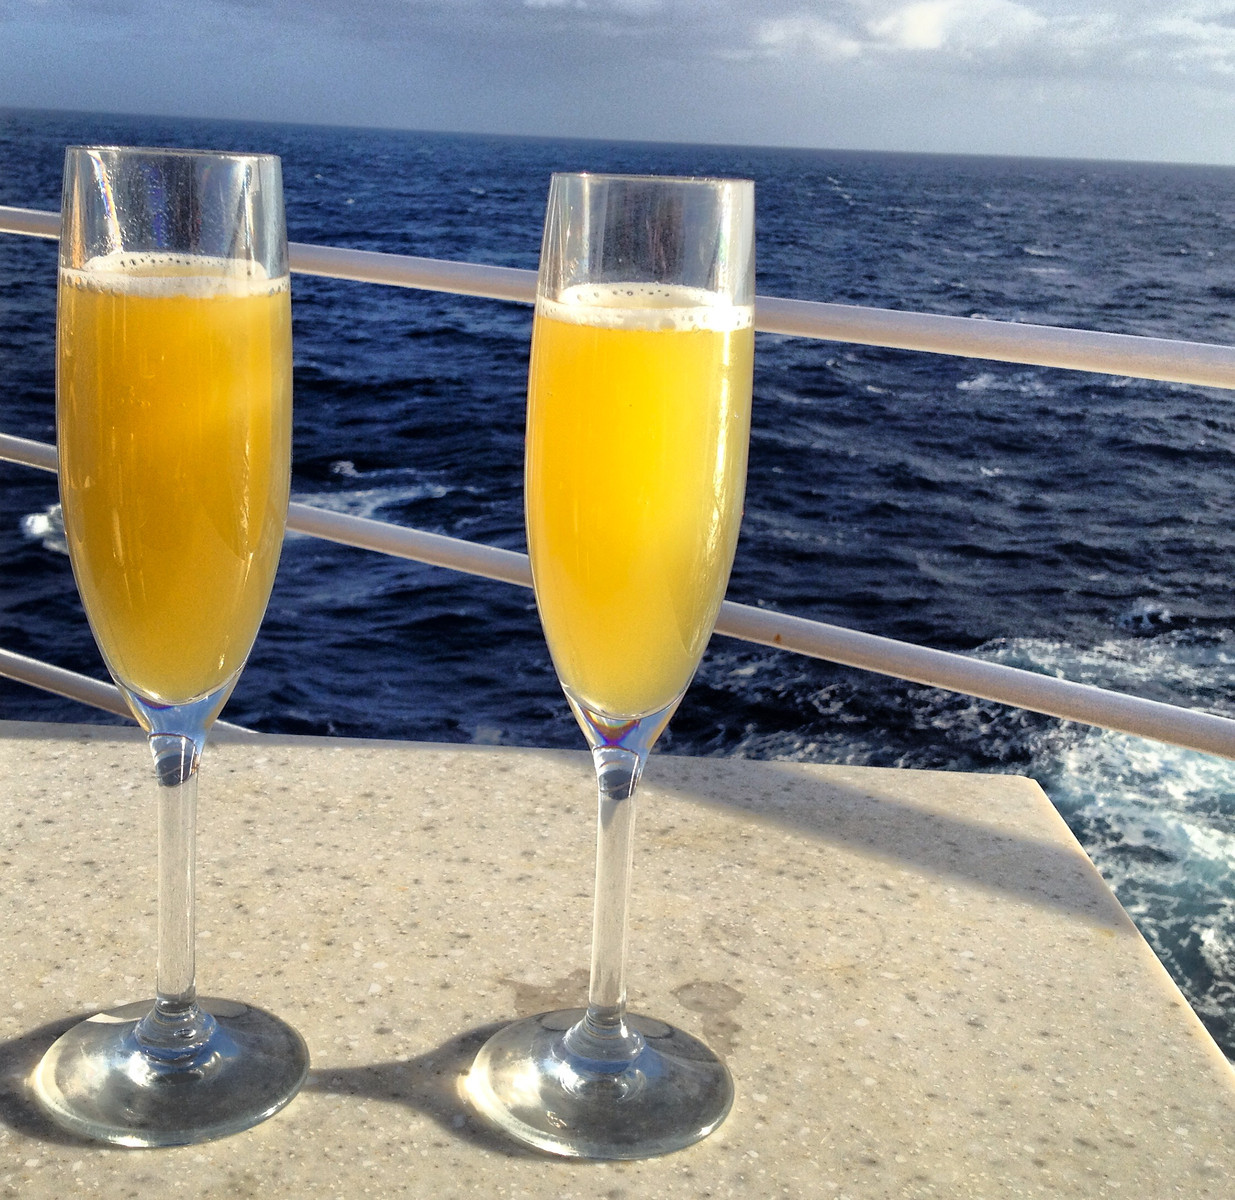 Mimosas served in champagne glasses on the balcony of a cruise ship.